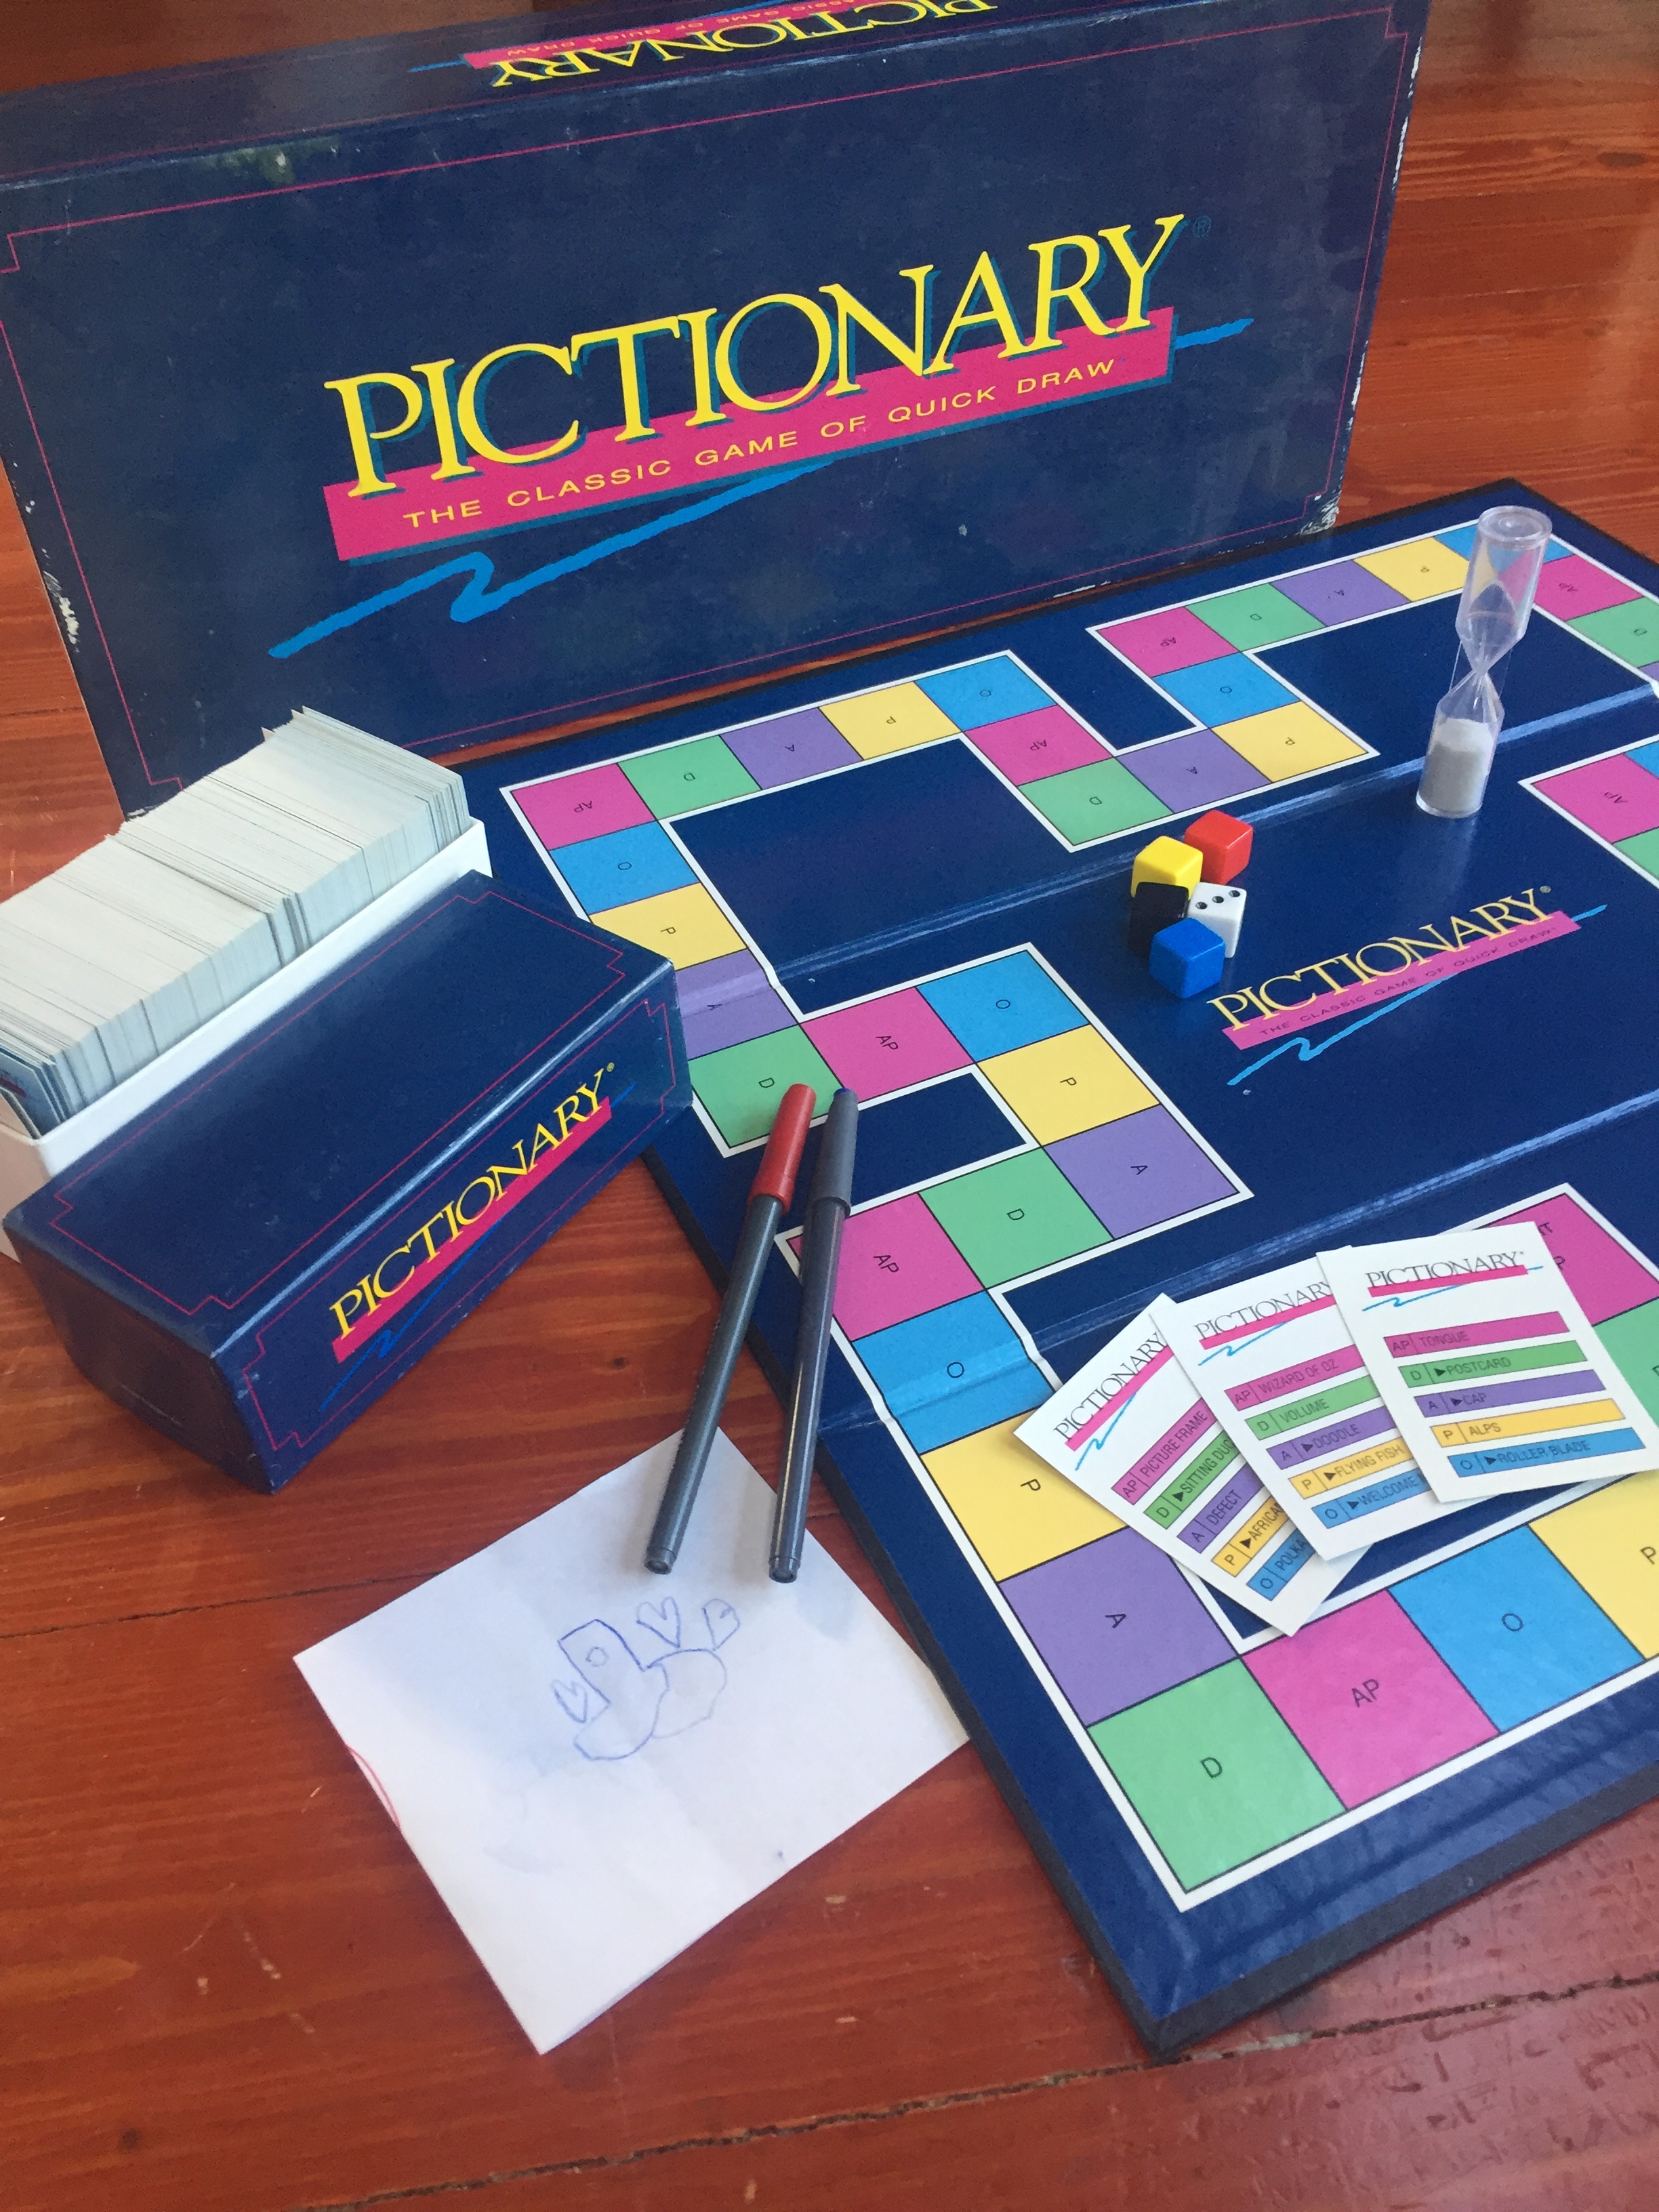 Pictionary original drawing board game